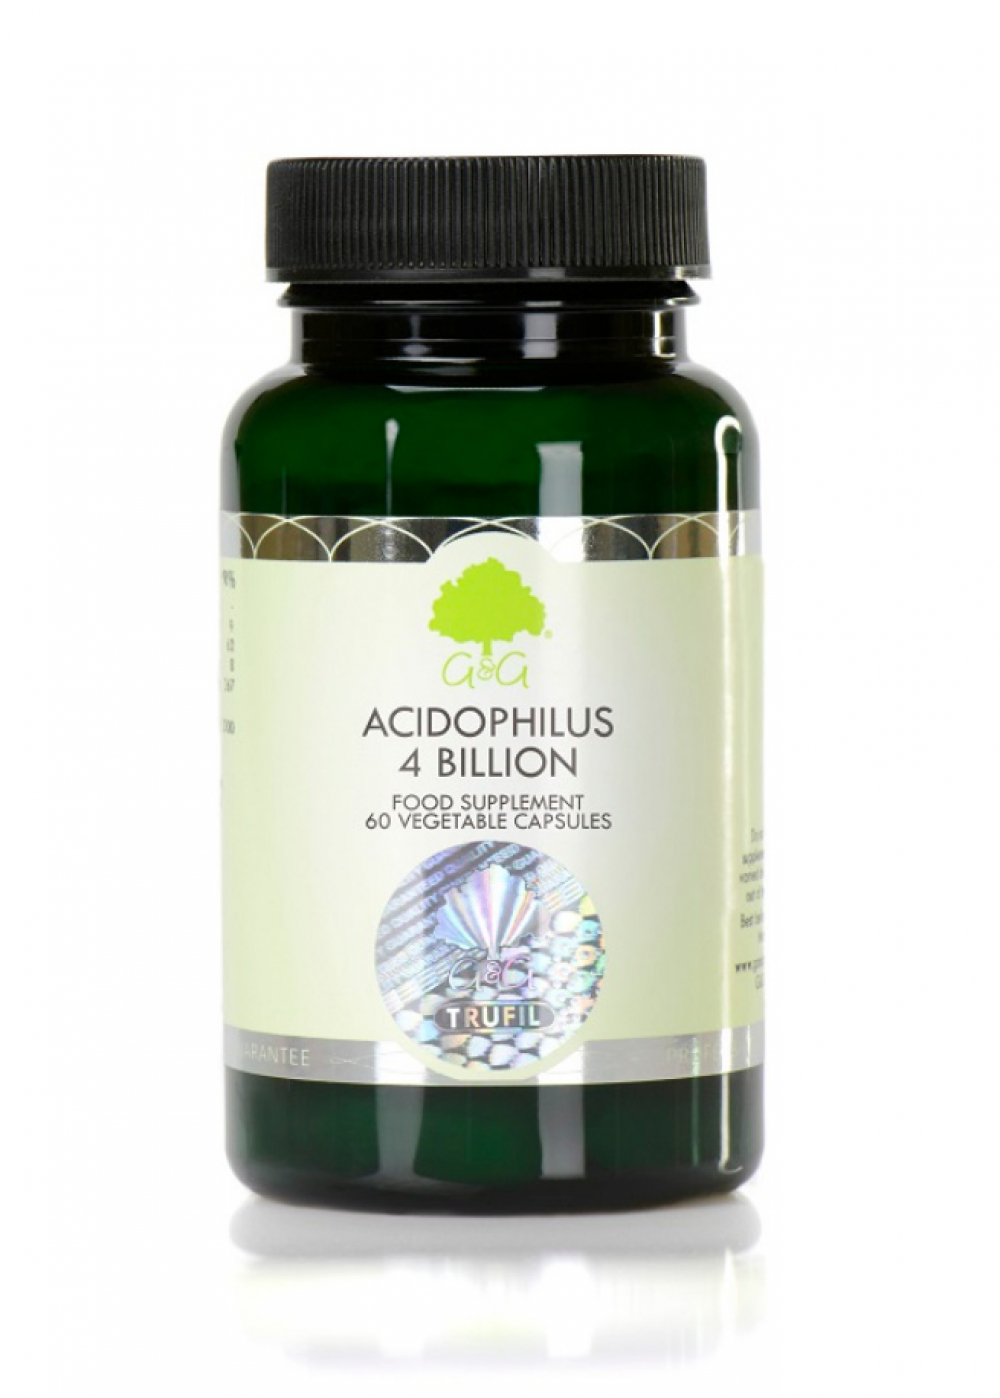 G&G Vitamins Acidophilus 4 Billion (4 Milliarden) 60 veg. Kapseln (30g)(vegan)